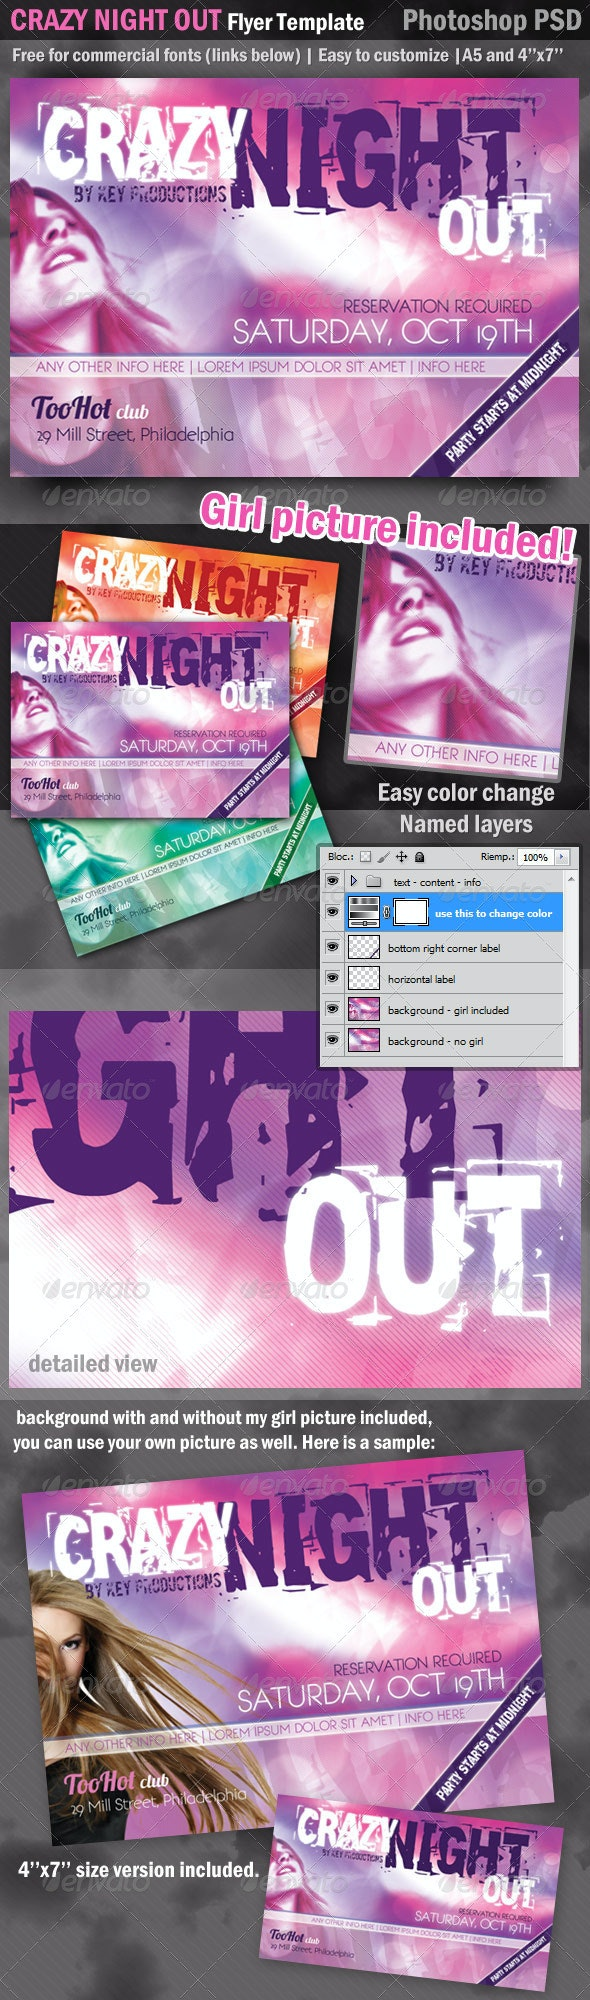 CrazyNightOut Flyer Template - Picture Included - Clubs & Parties Events